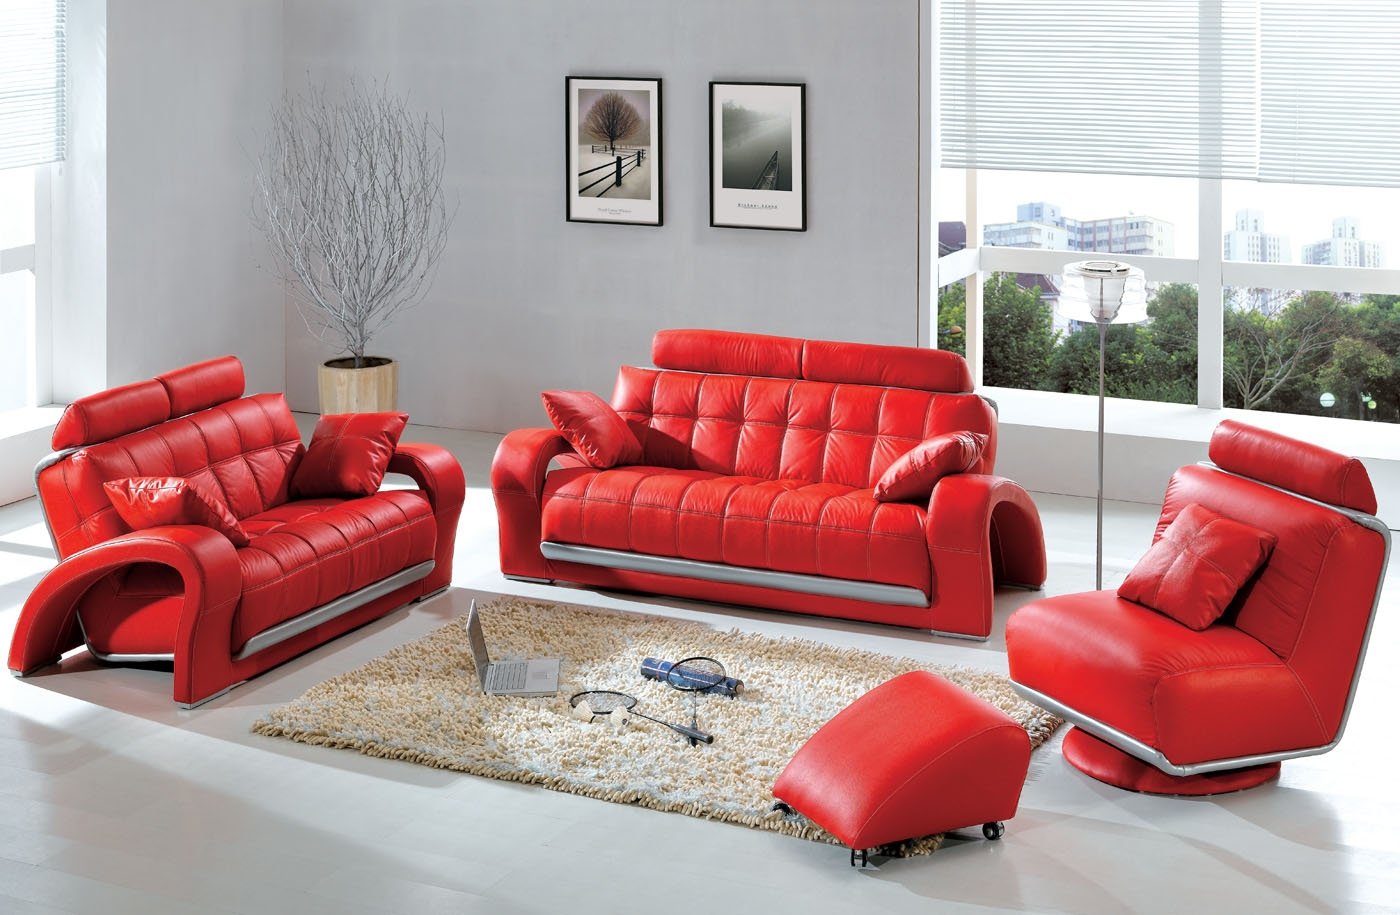 Perfect Red Leather Sofa Chair 18 On Sofas and Couches Ideas with Red Leather Sofa Chair